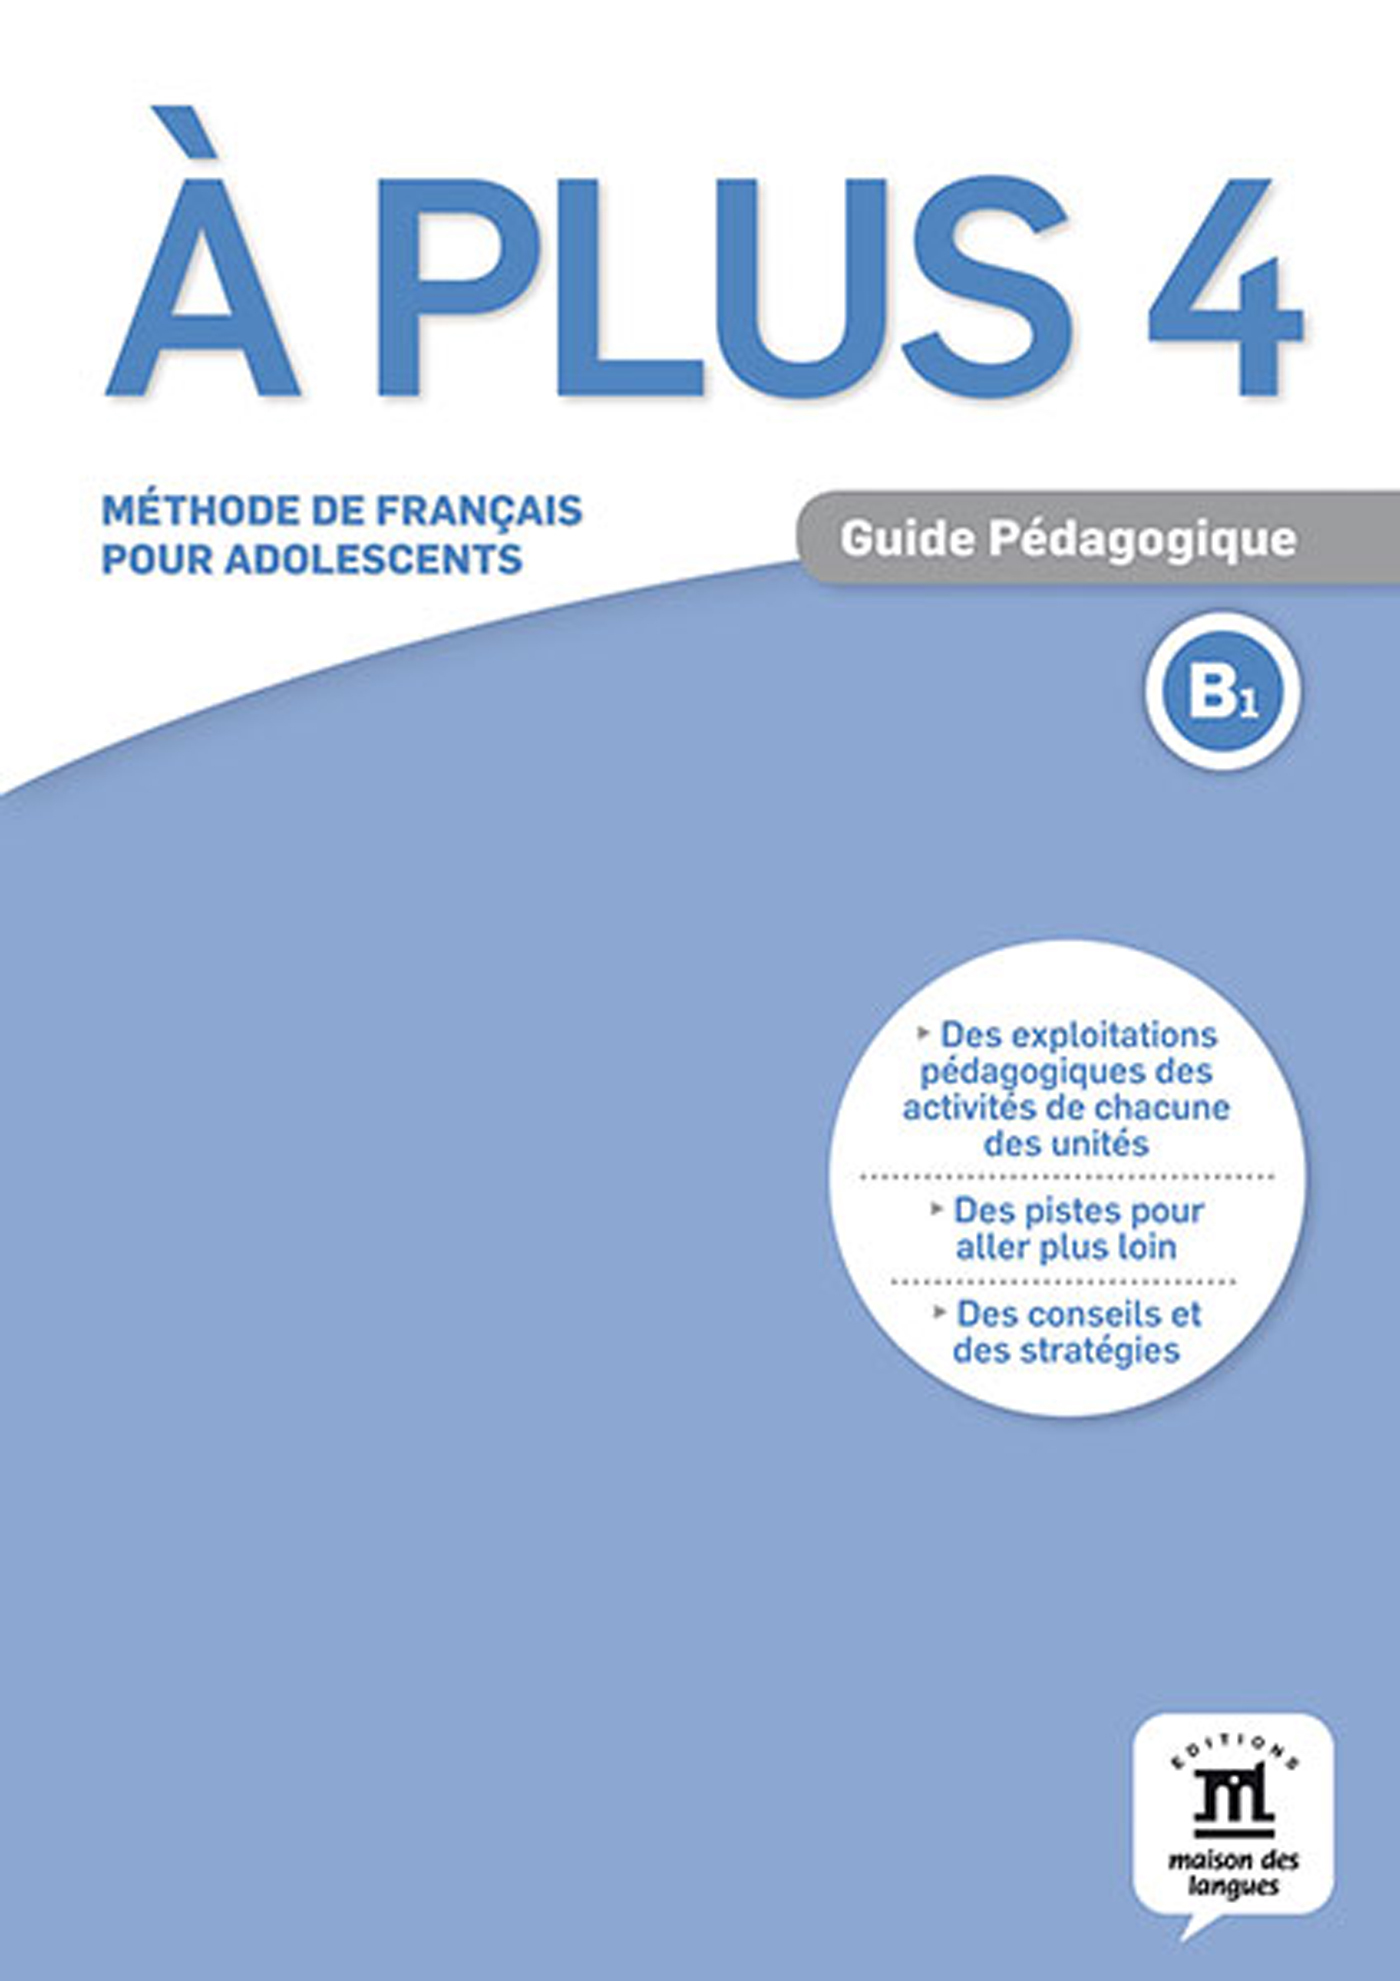 A PLUS 4 - GUIDE PEDAGOGIQUE